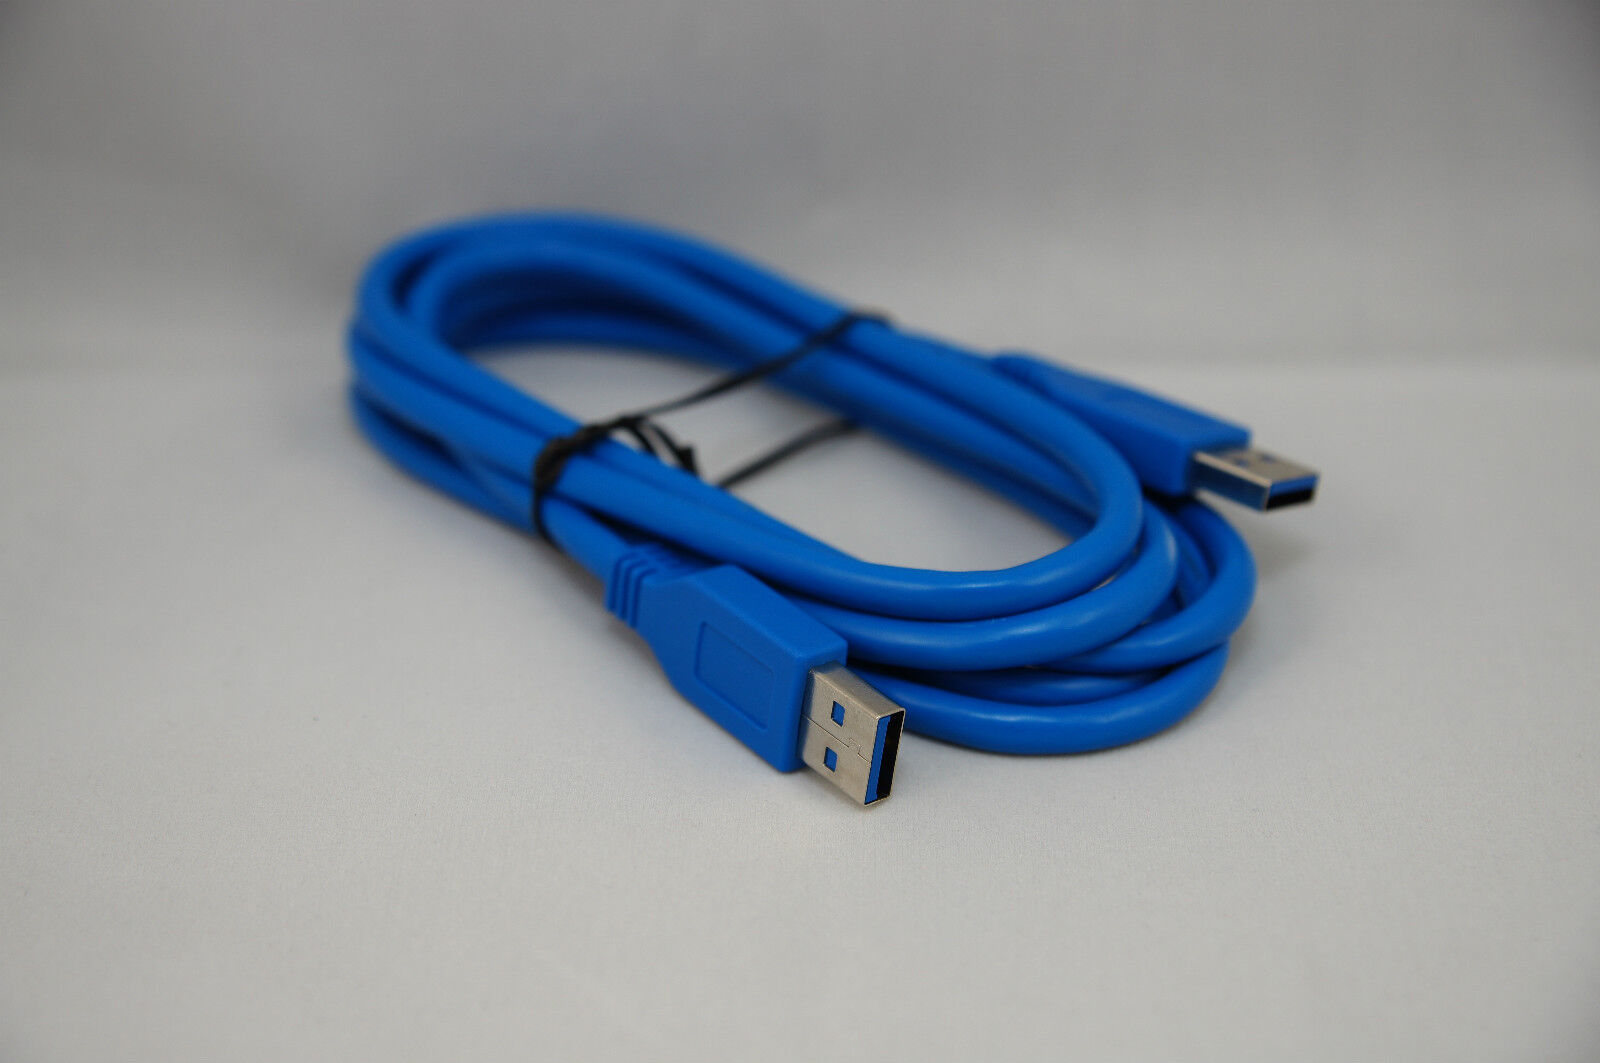 SuperSpeed USB 3.0 A Male to A Male (Blue) 6 Foot Blue High quality